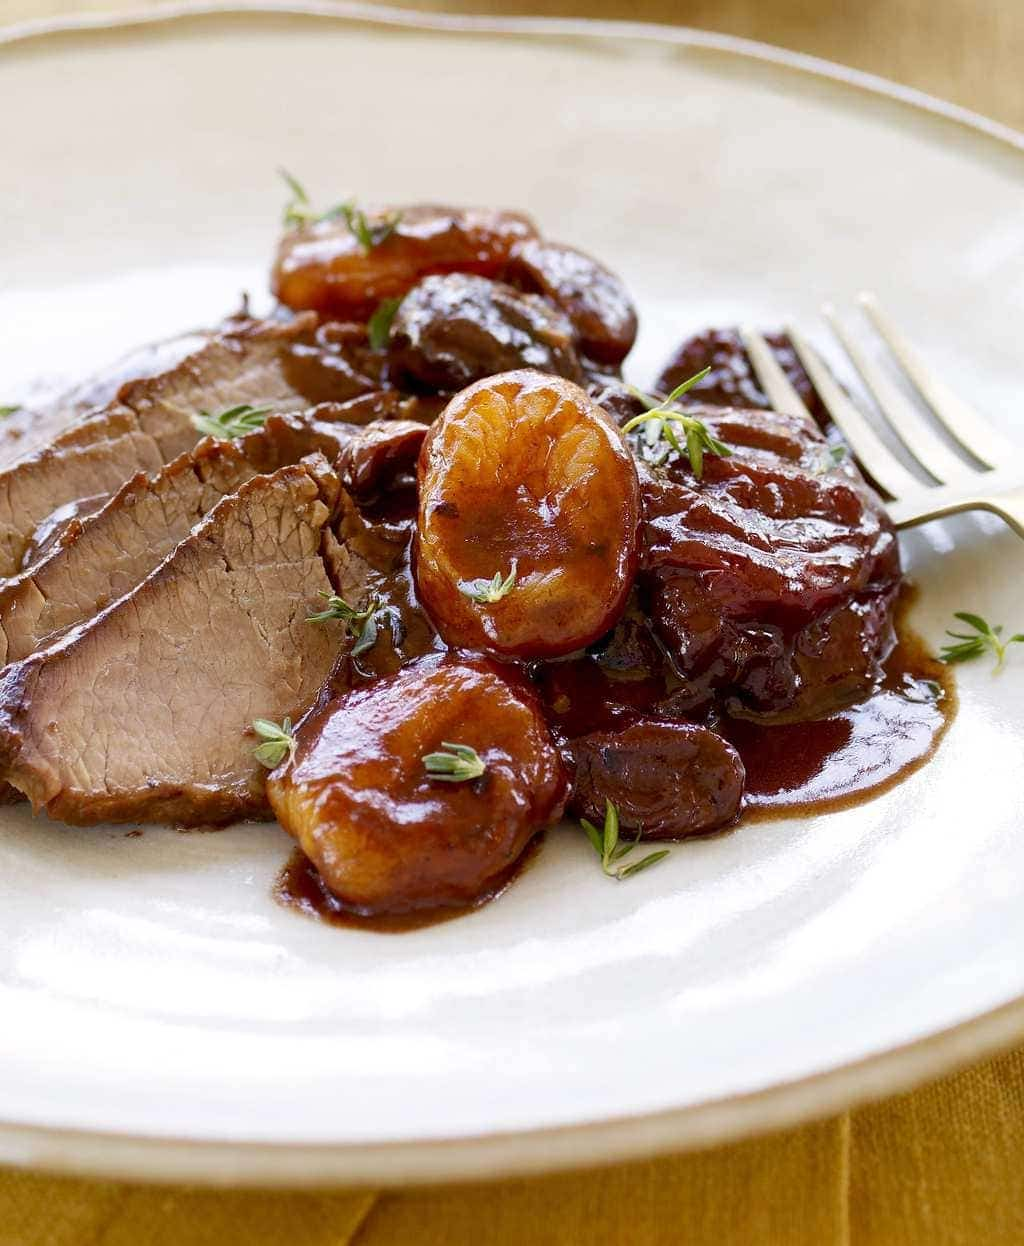 Brisket with Fruit and Wine Sauce on white place - close crop.